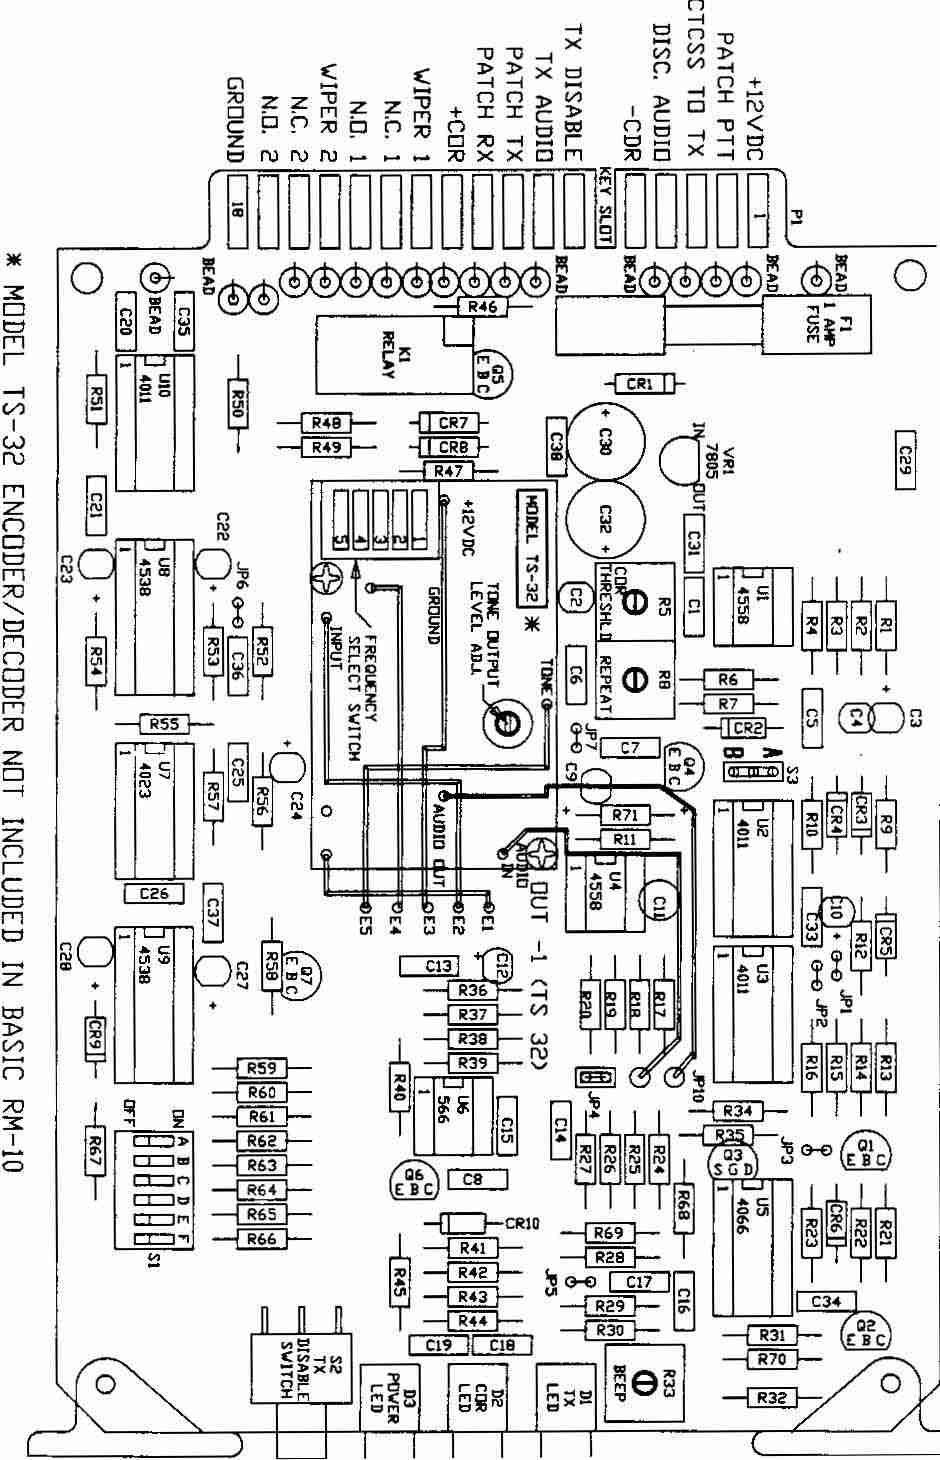 hight resolution of related with whelen power supply wiring diagram